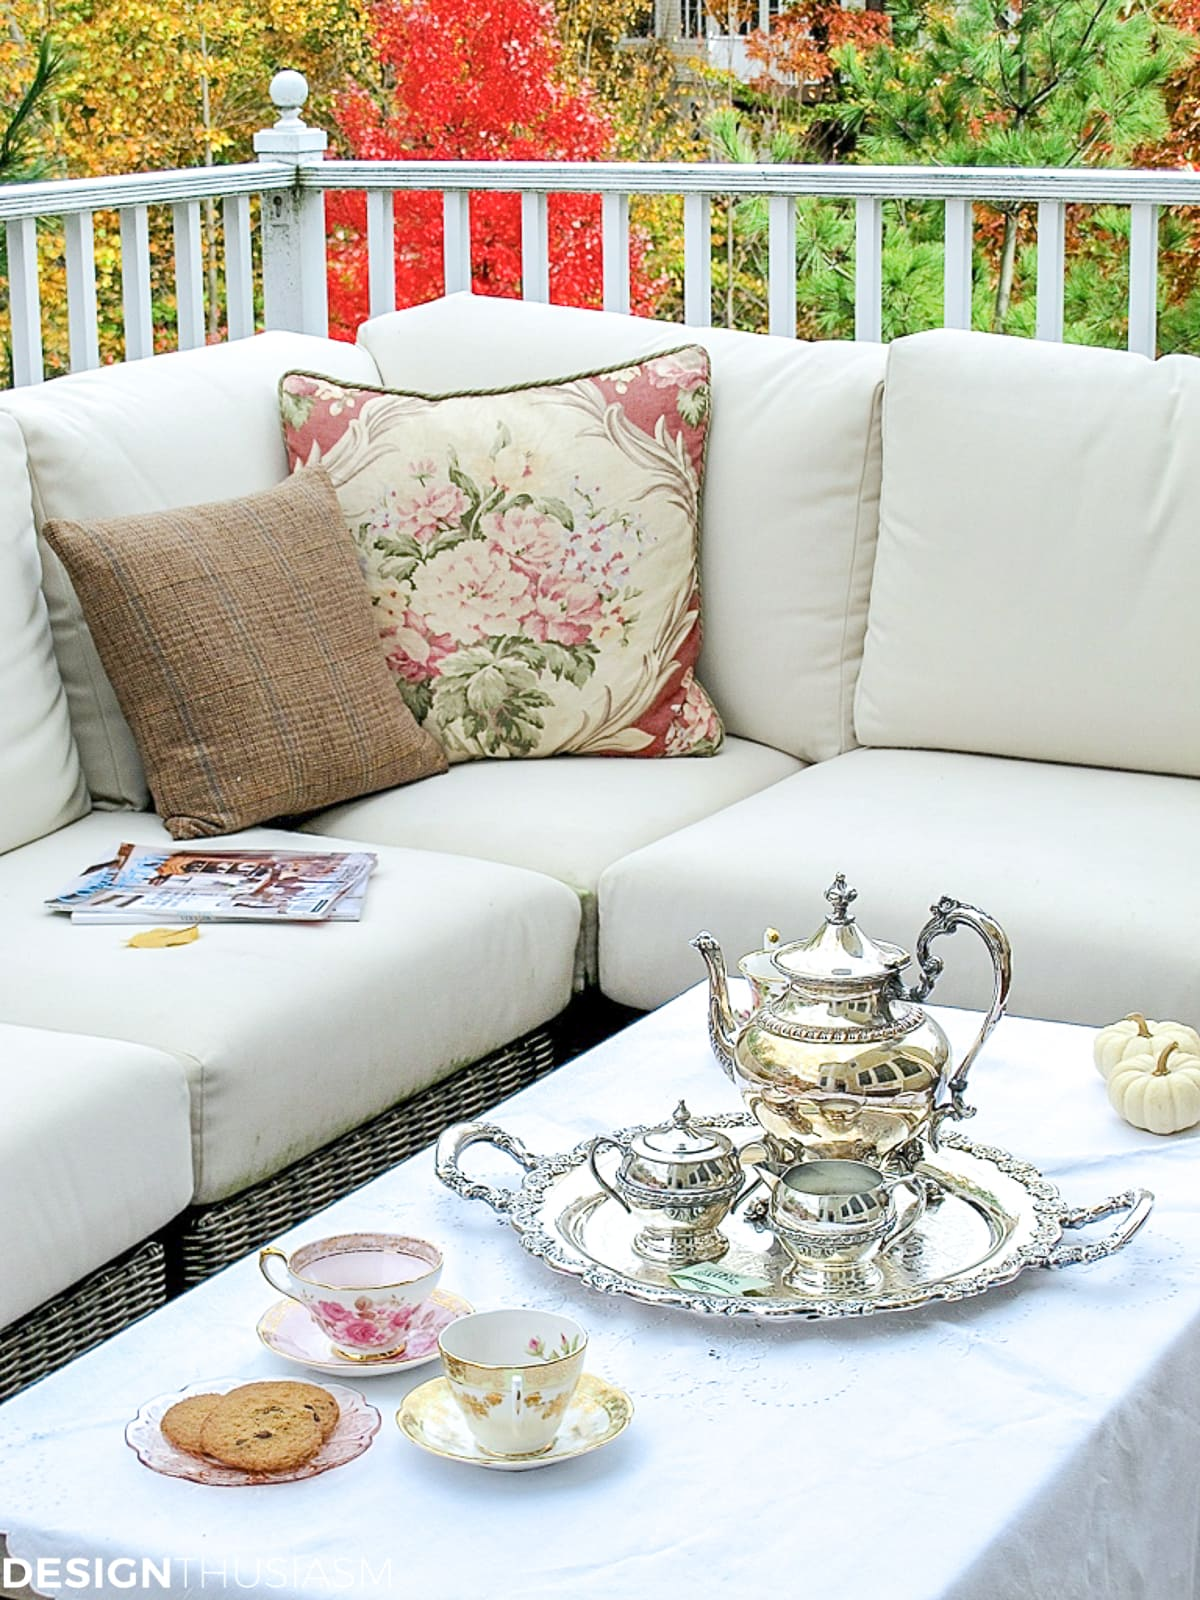 tweed and floral pillows on a fall patio